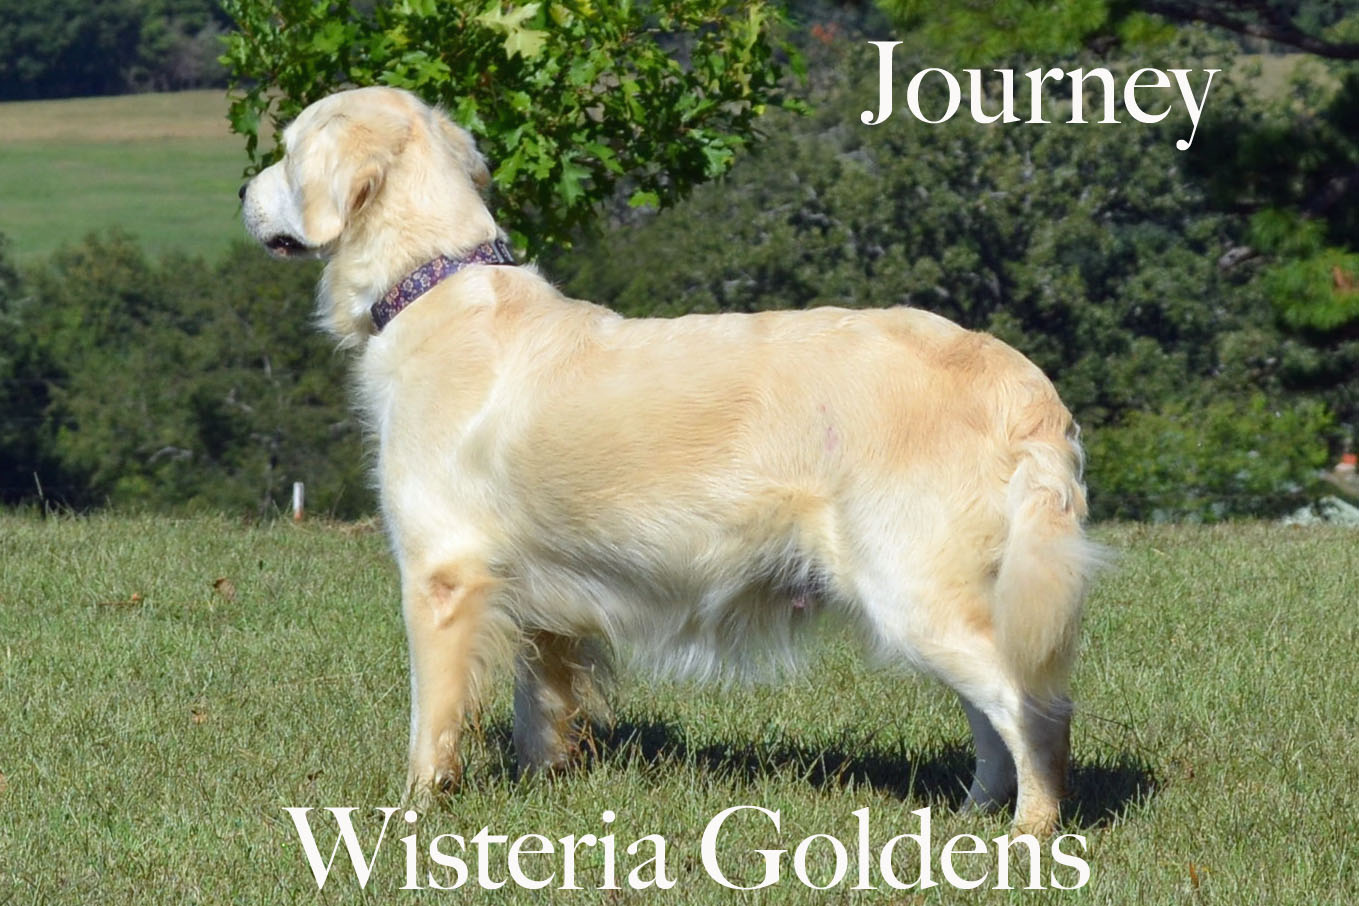 Journey_0010_full-english-creme-golden-retriever-wisteria-goldens